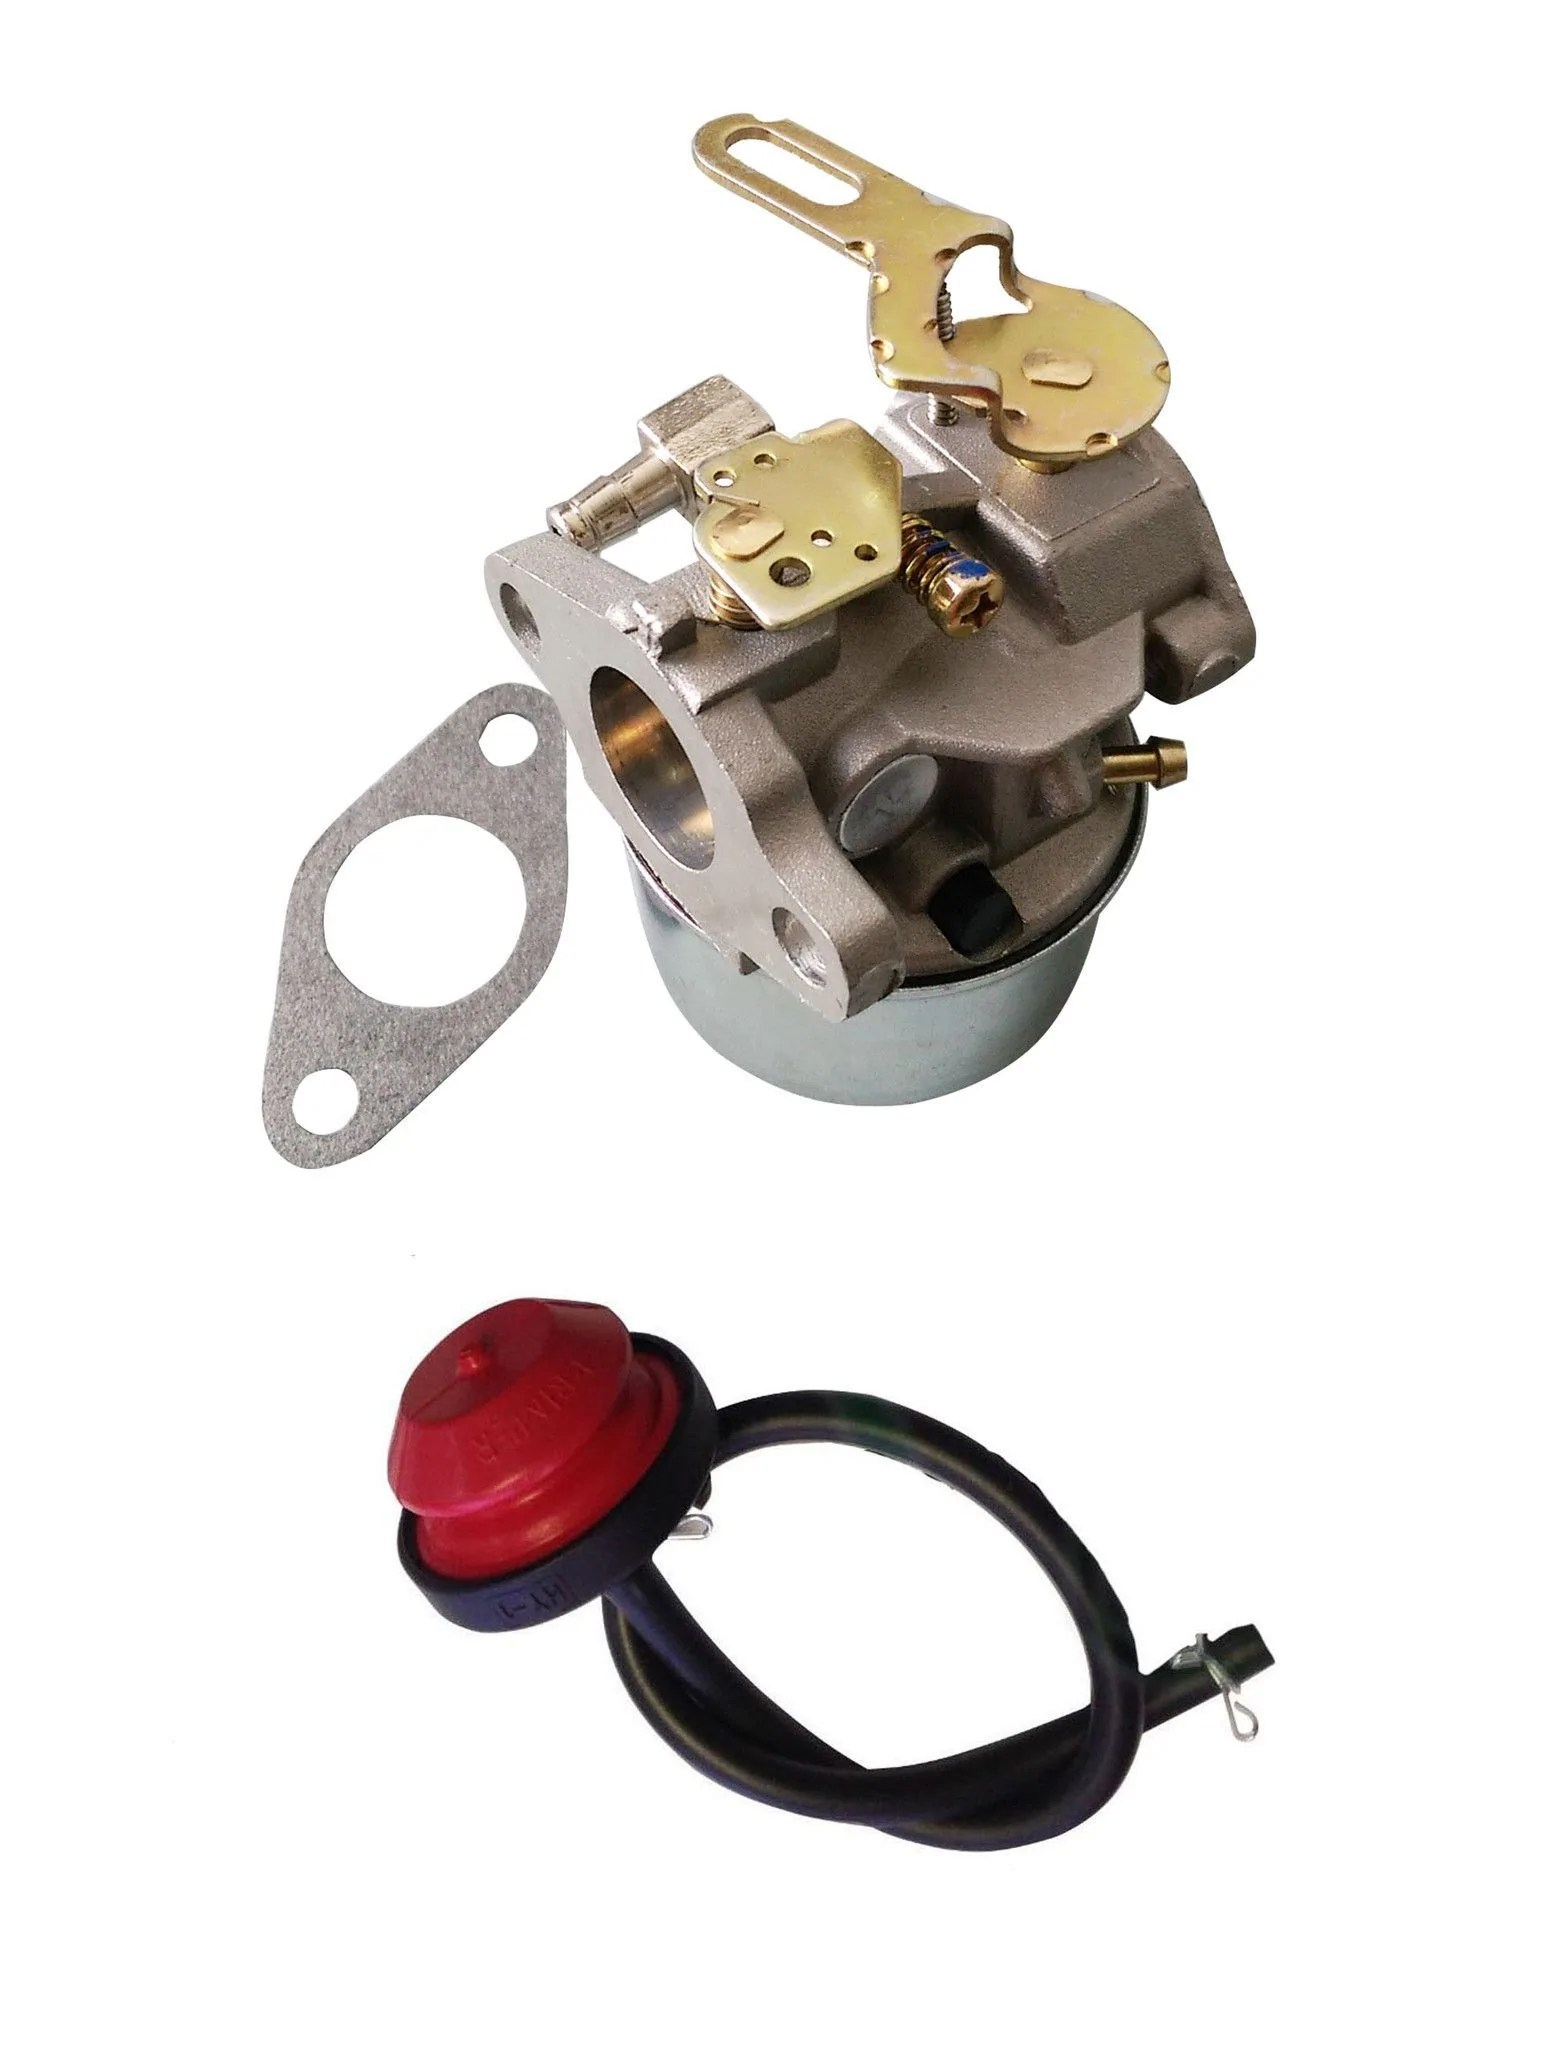 hight resolution of everest carburetor with primer bulb fits toro snowblower usa everest parts supplies